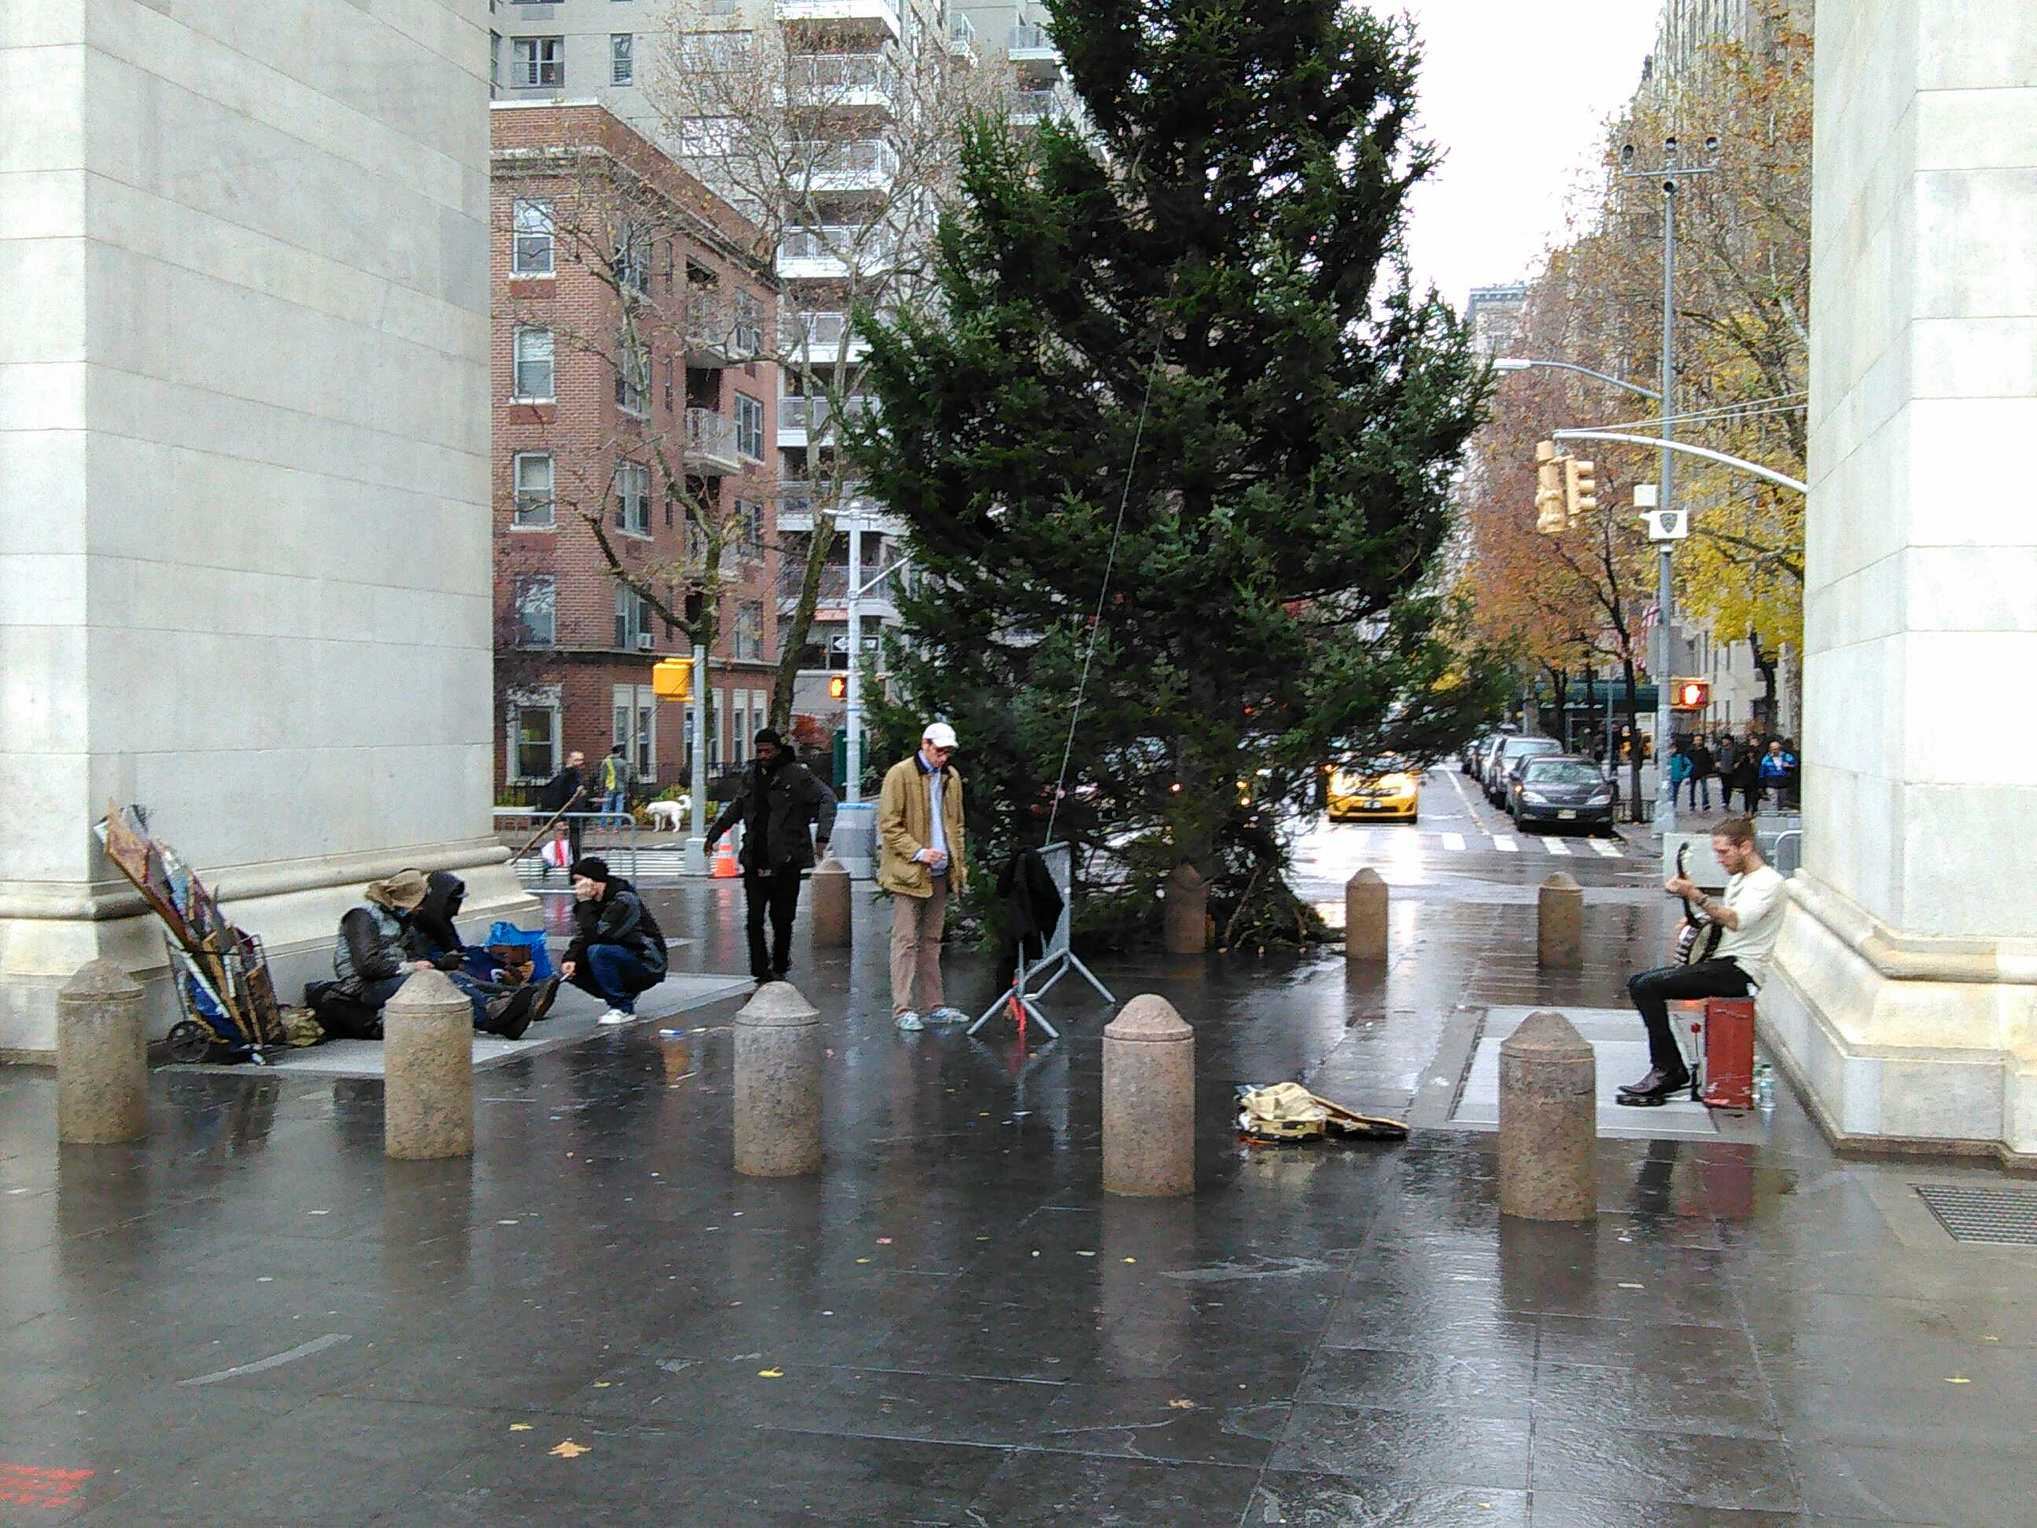 On December 1, the holiday tree was installed, while some street people took up residence on the west side of the arch and a banjo player entertained them from the east side.